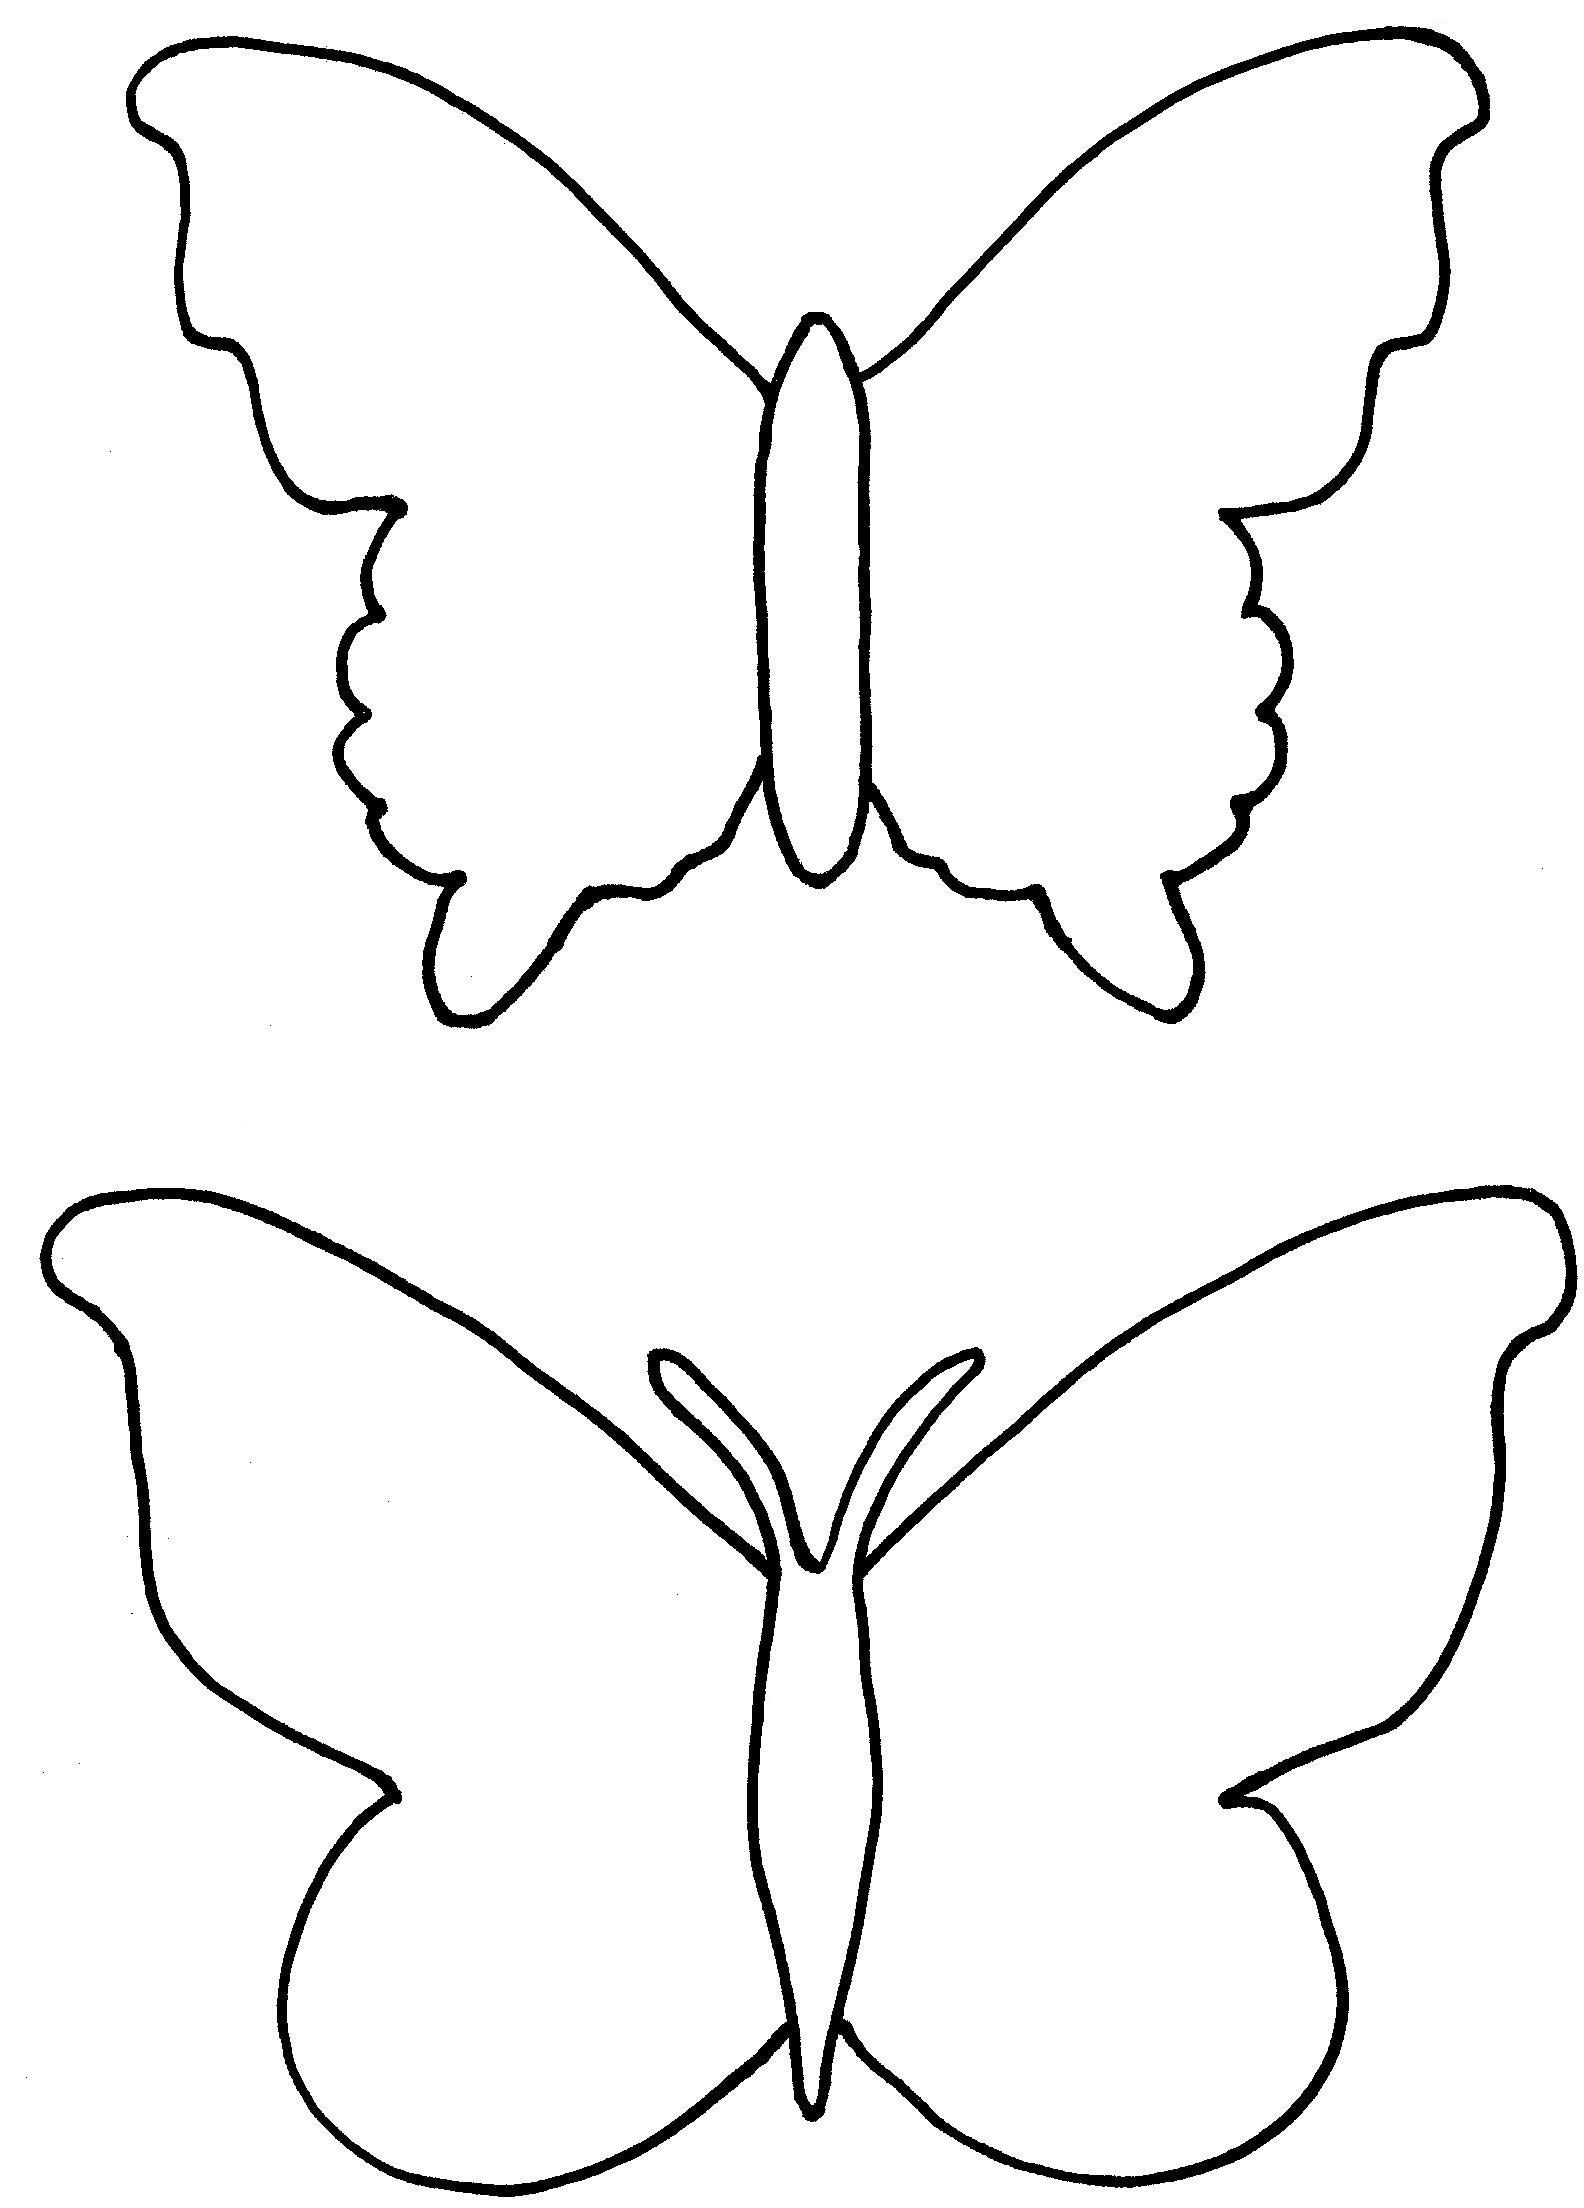 Butterfly Outline Coloring Pages   Priroda    Butterfly